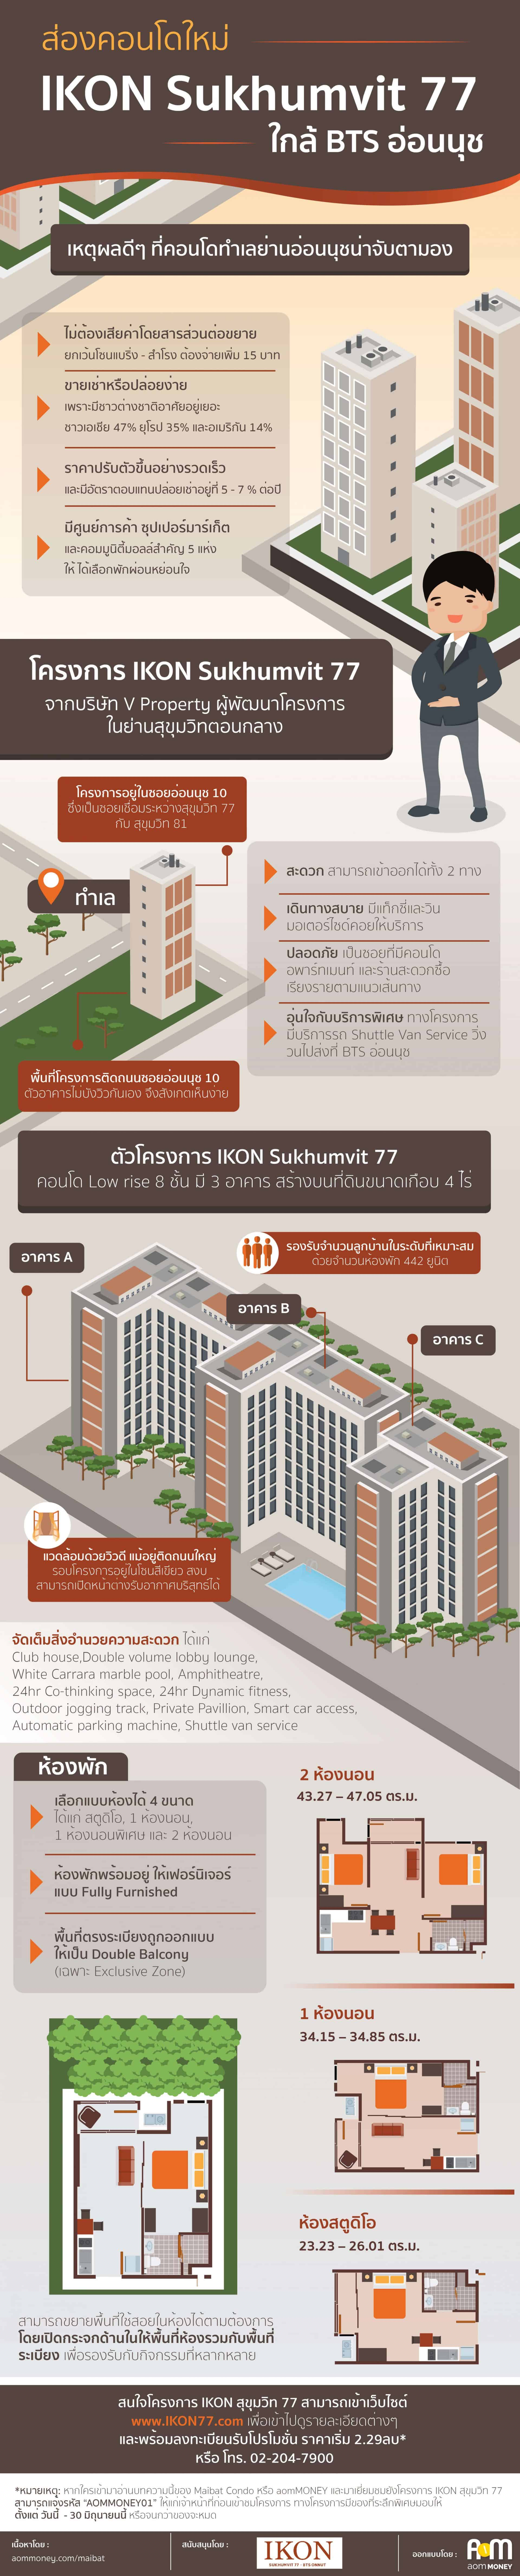 IKON Sukhumvit 77 Infographic Advertorial